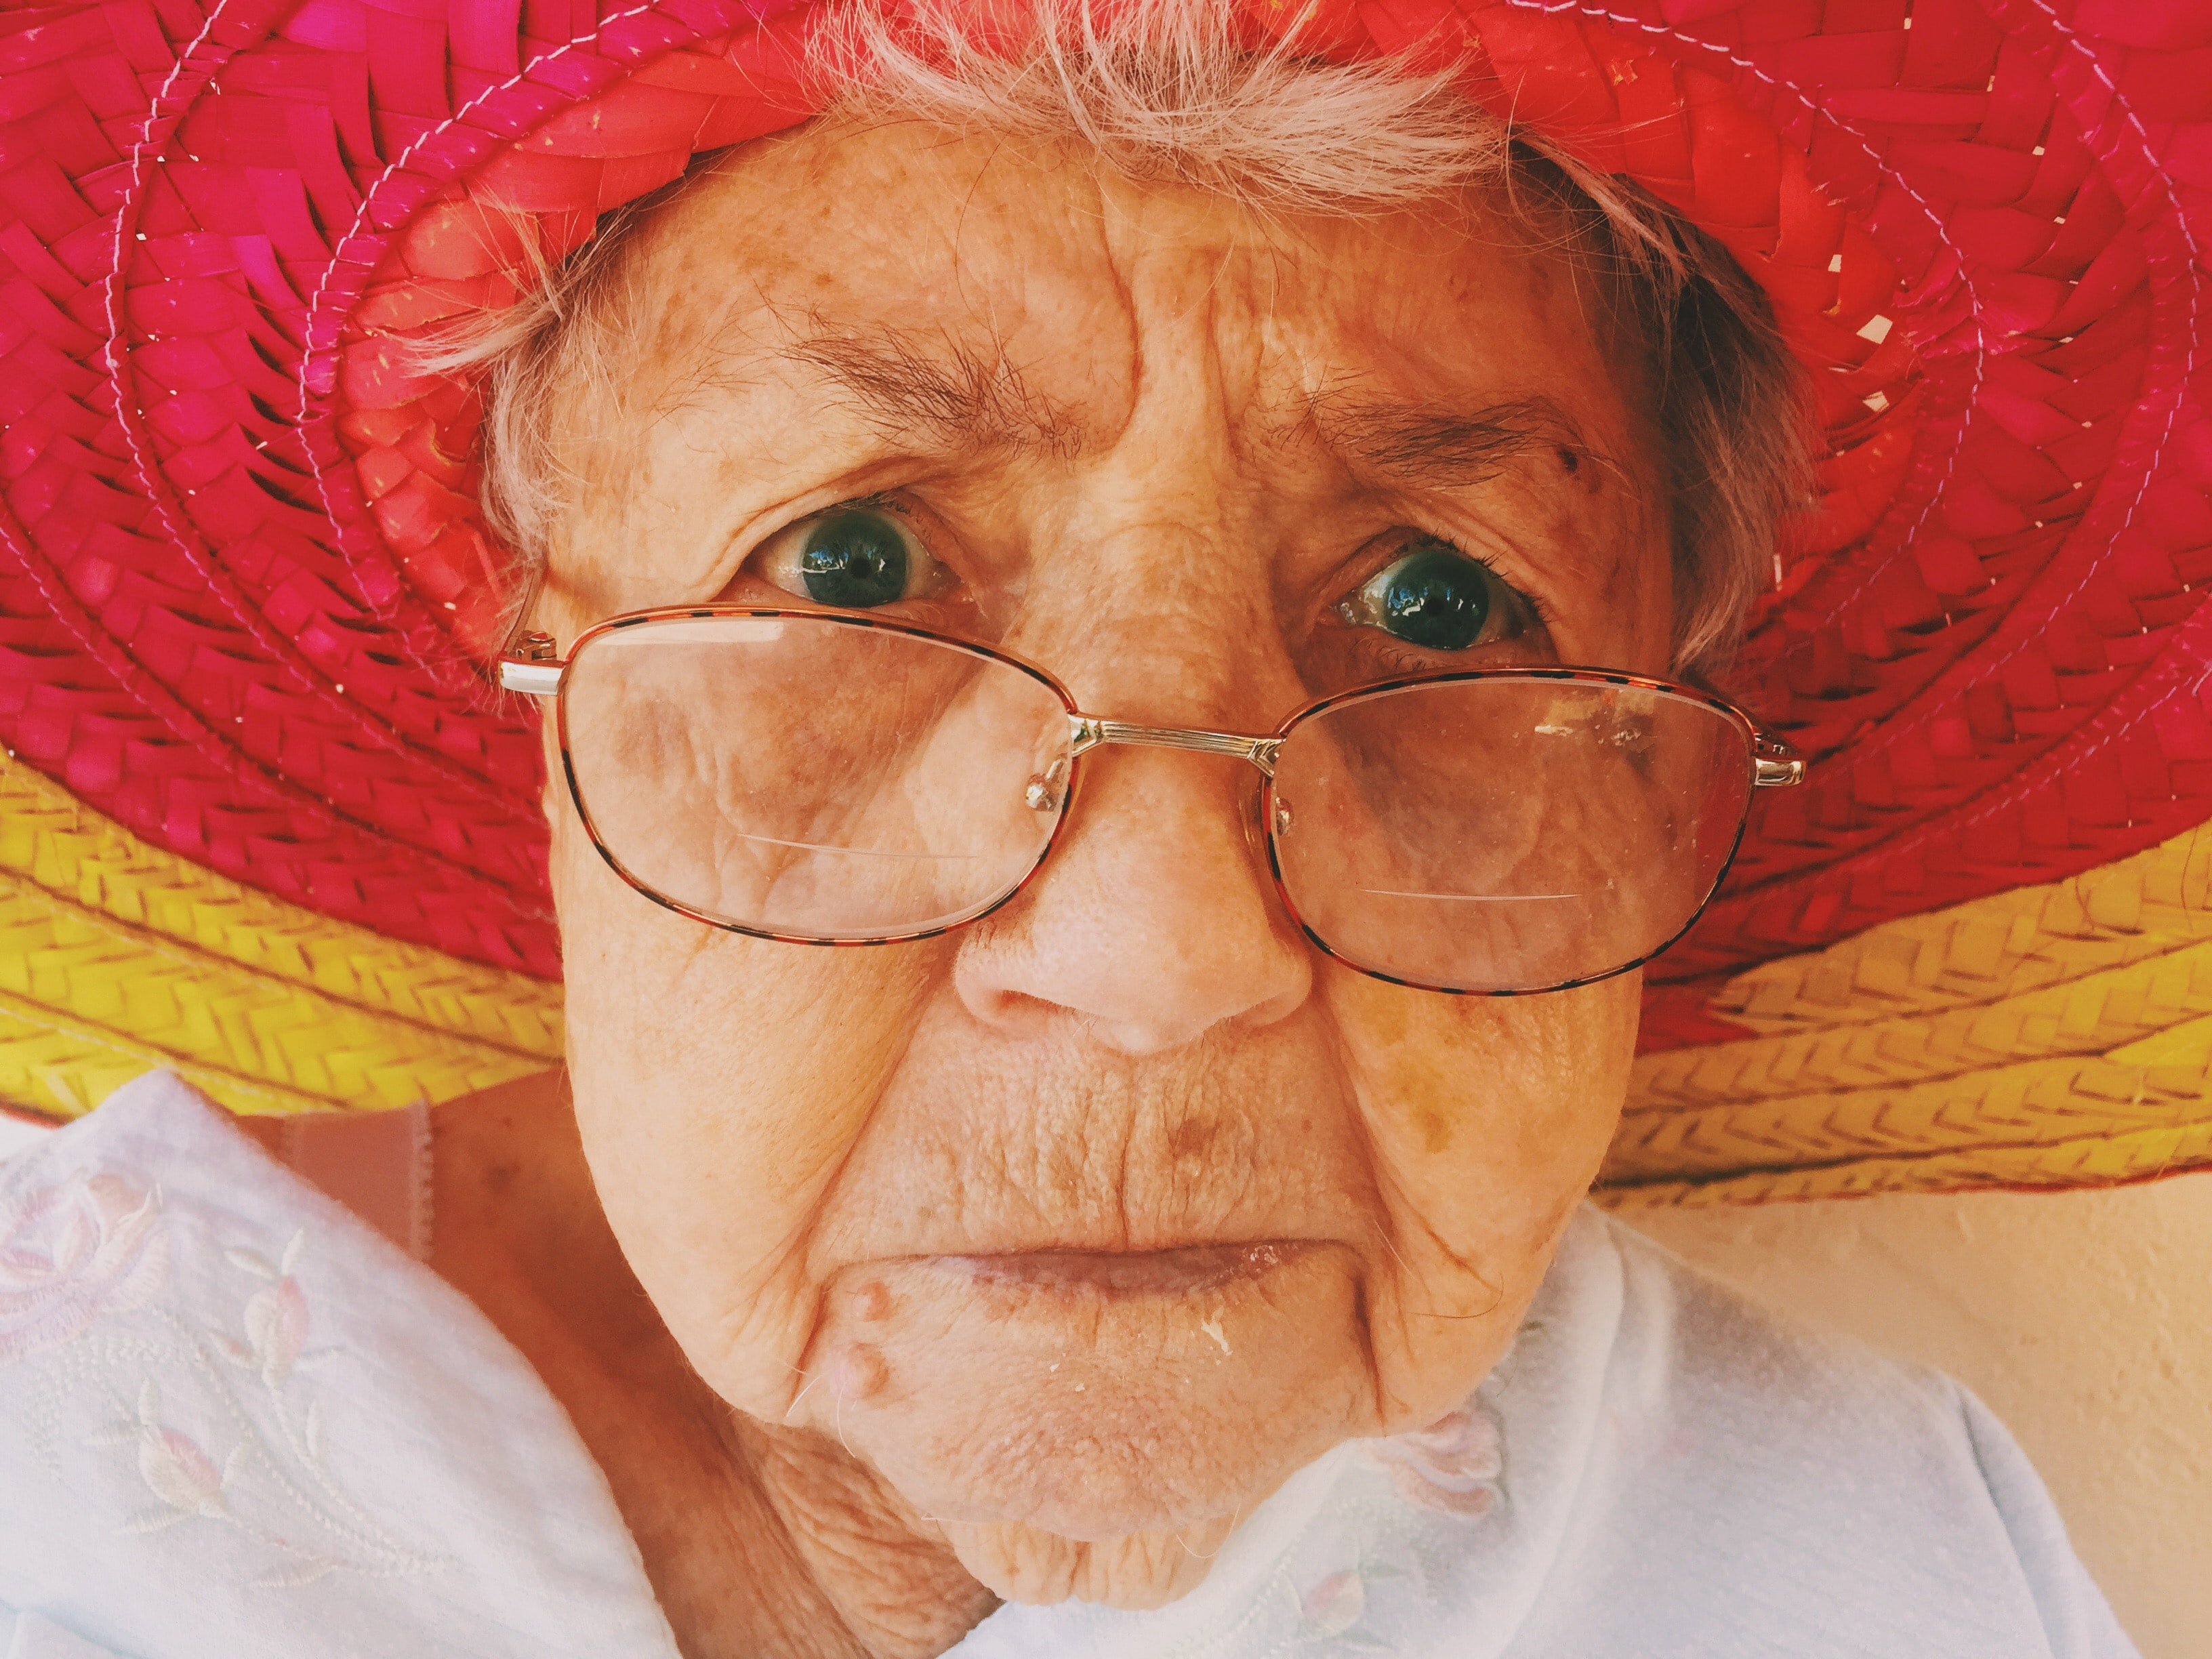 A portrait of an elderly woman in glasses and a red hat